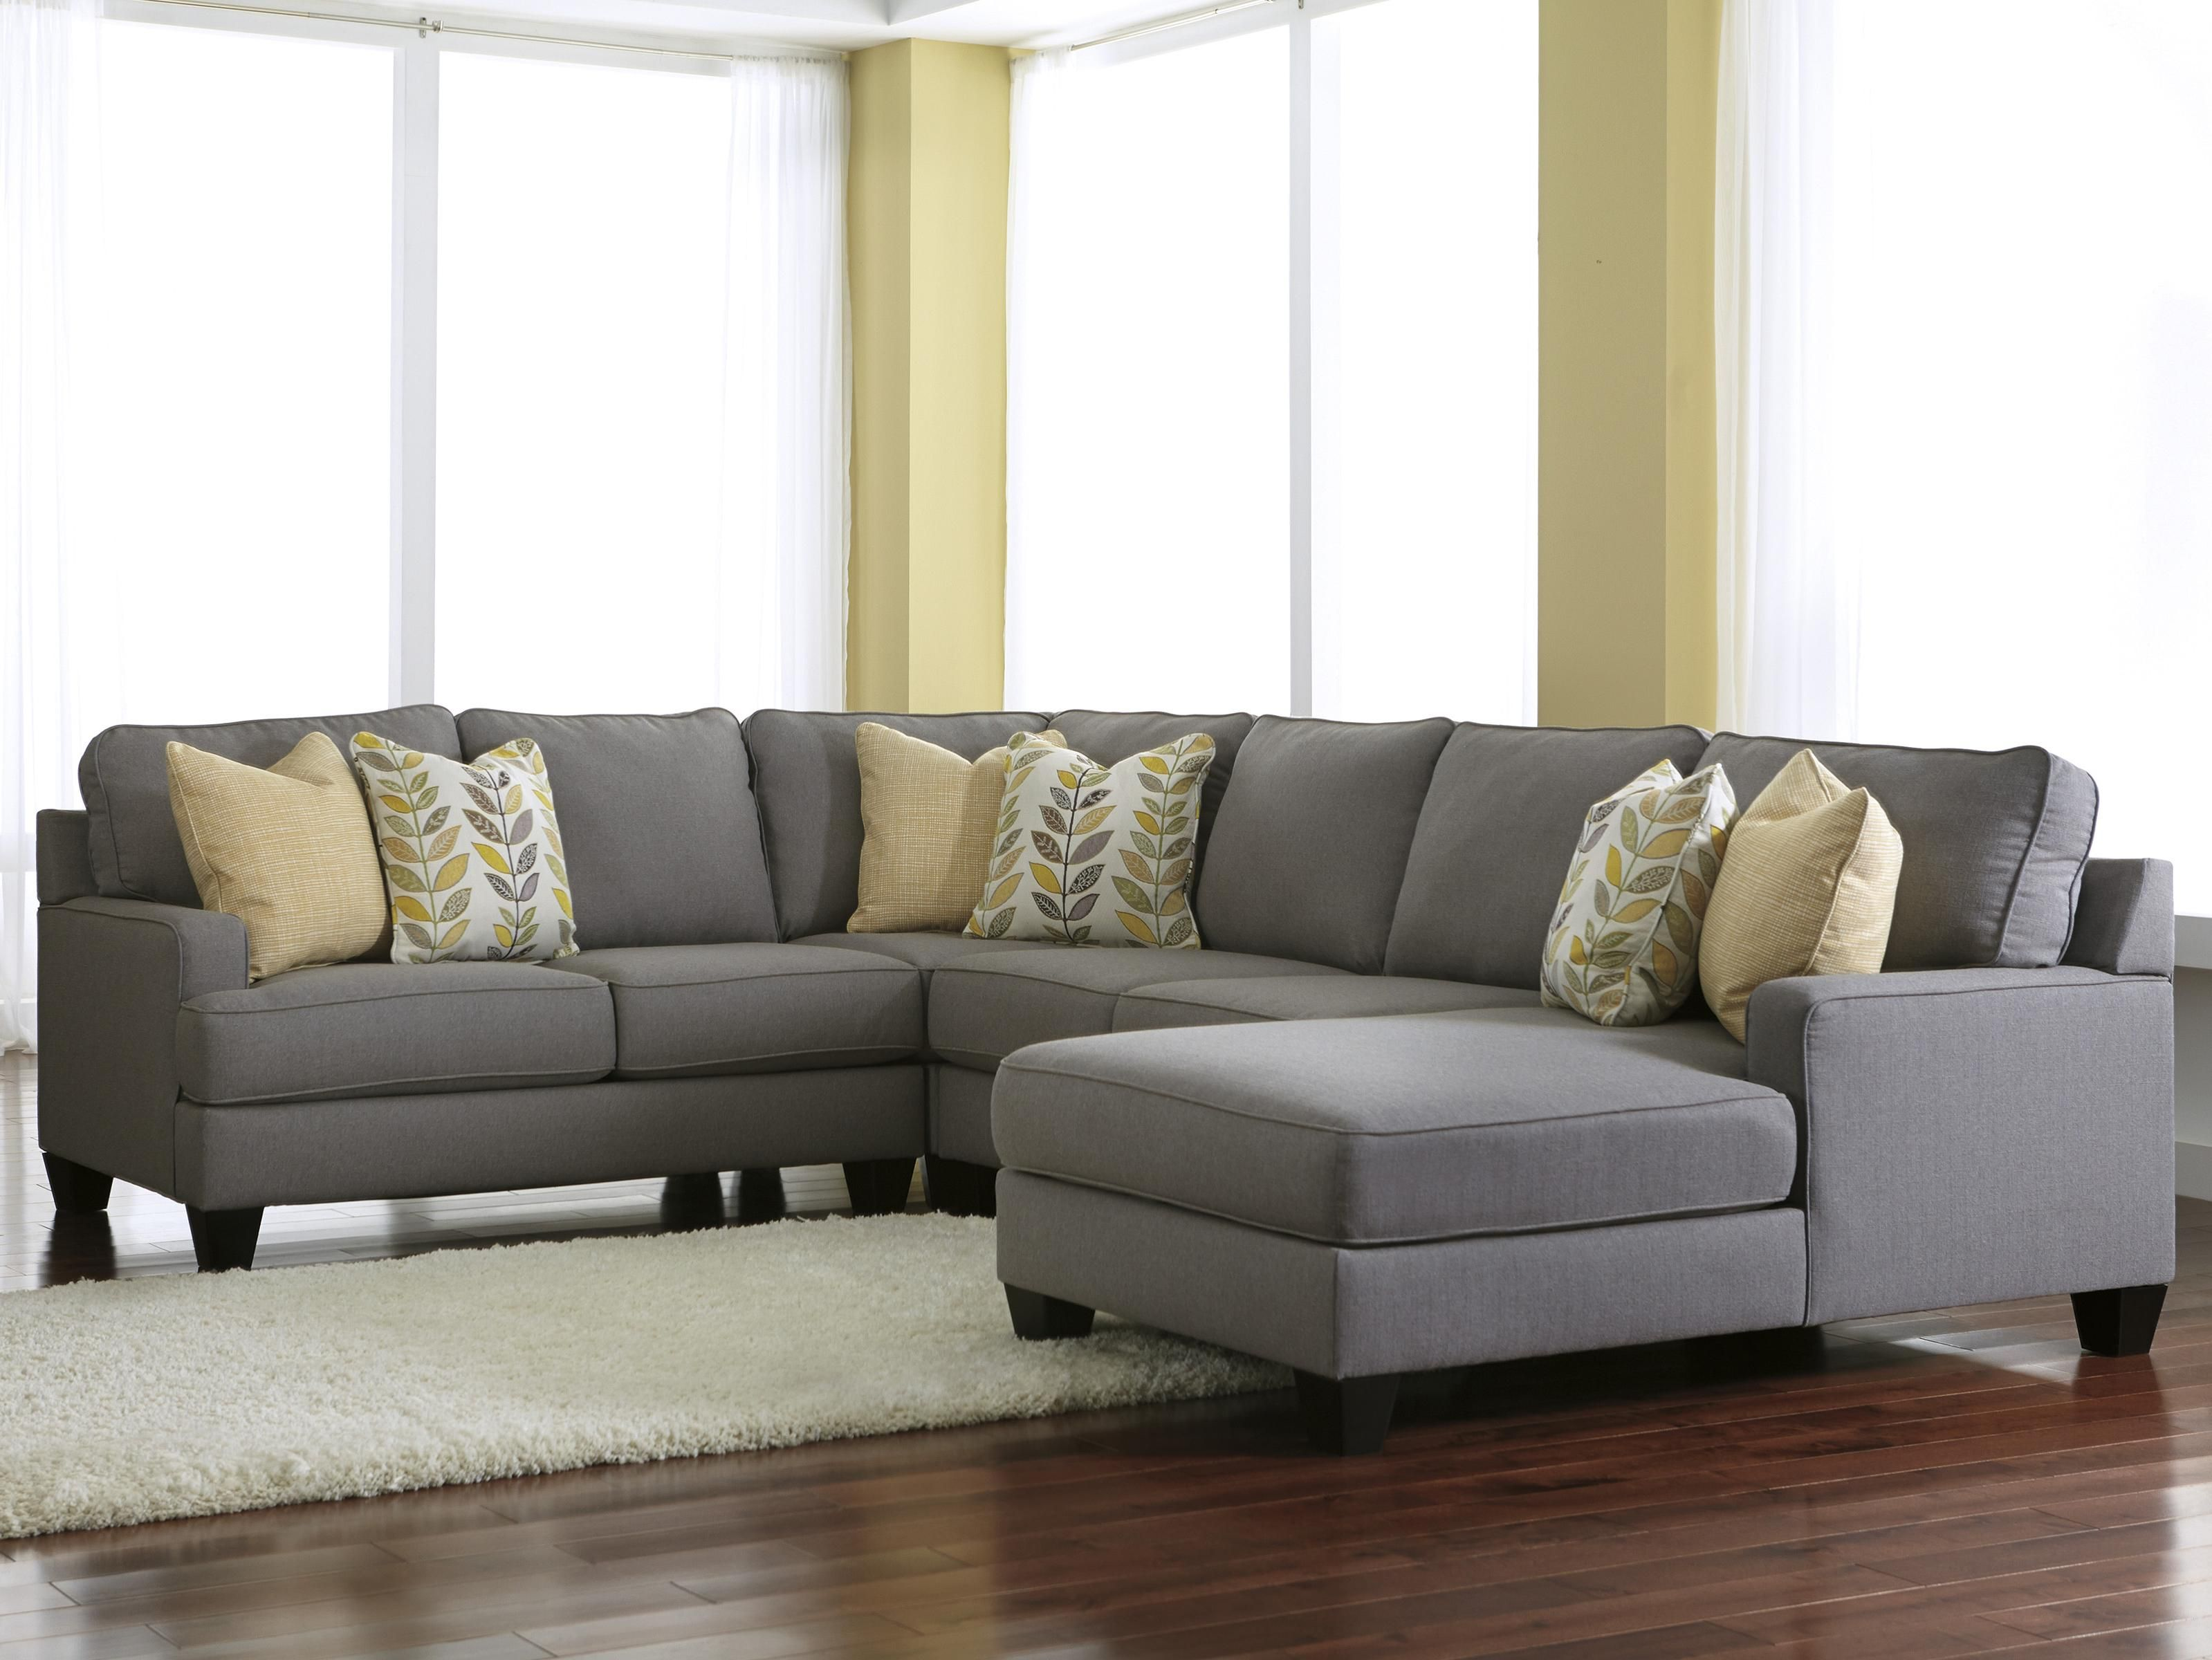 Best Chamberly Alloy 4 Piece Sectional Sofa With Right Chaise 400 x 300